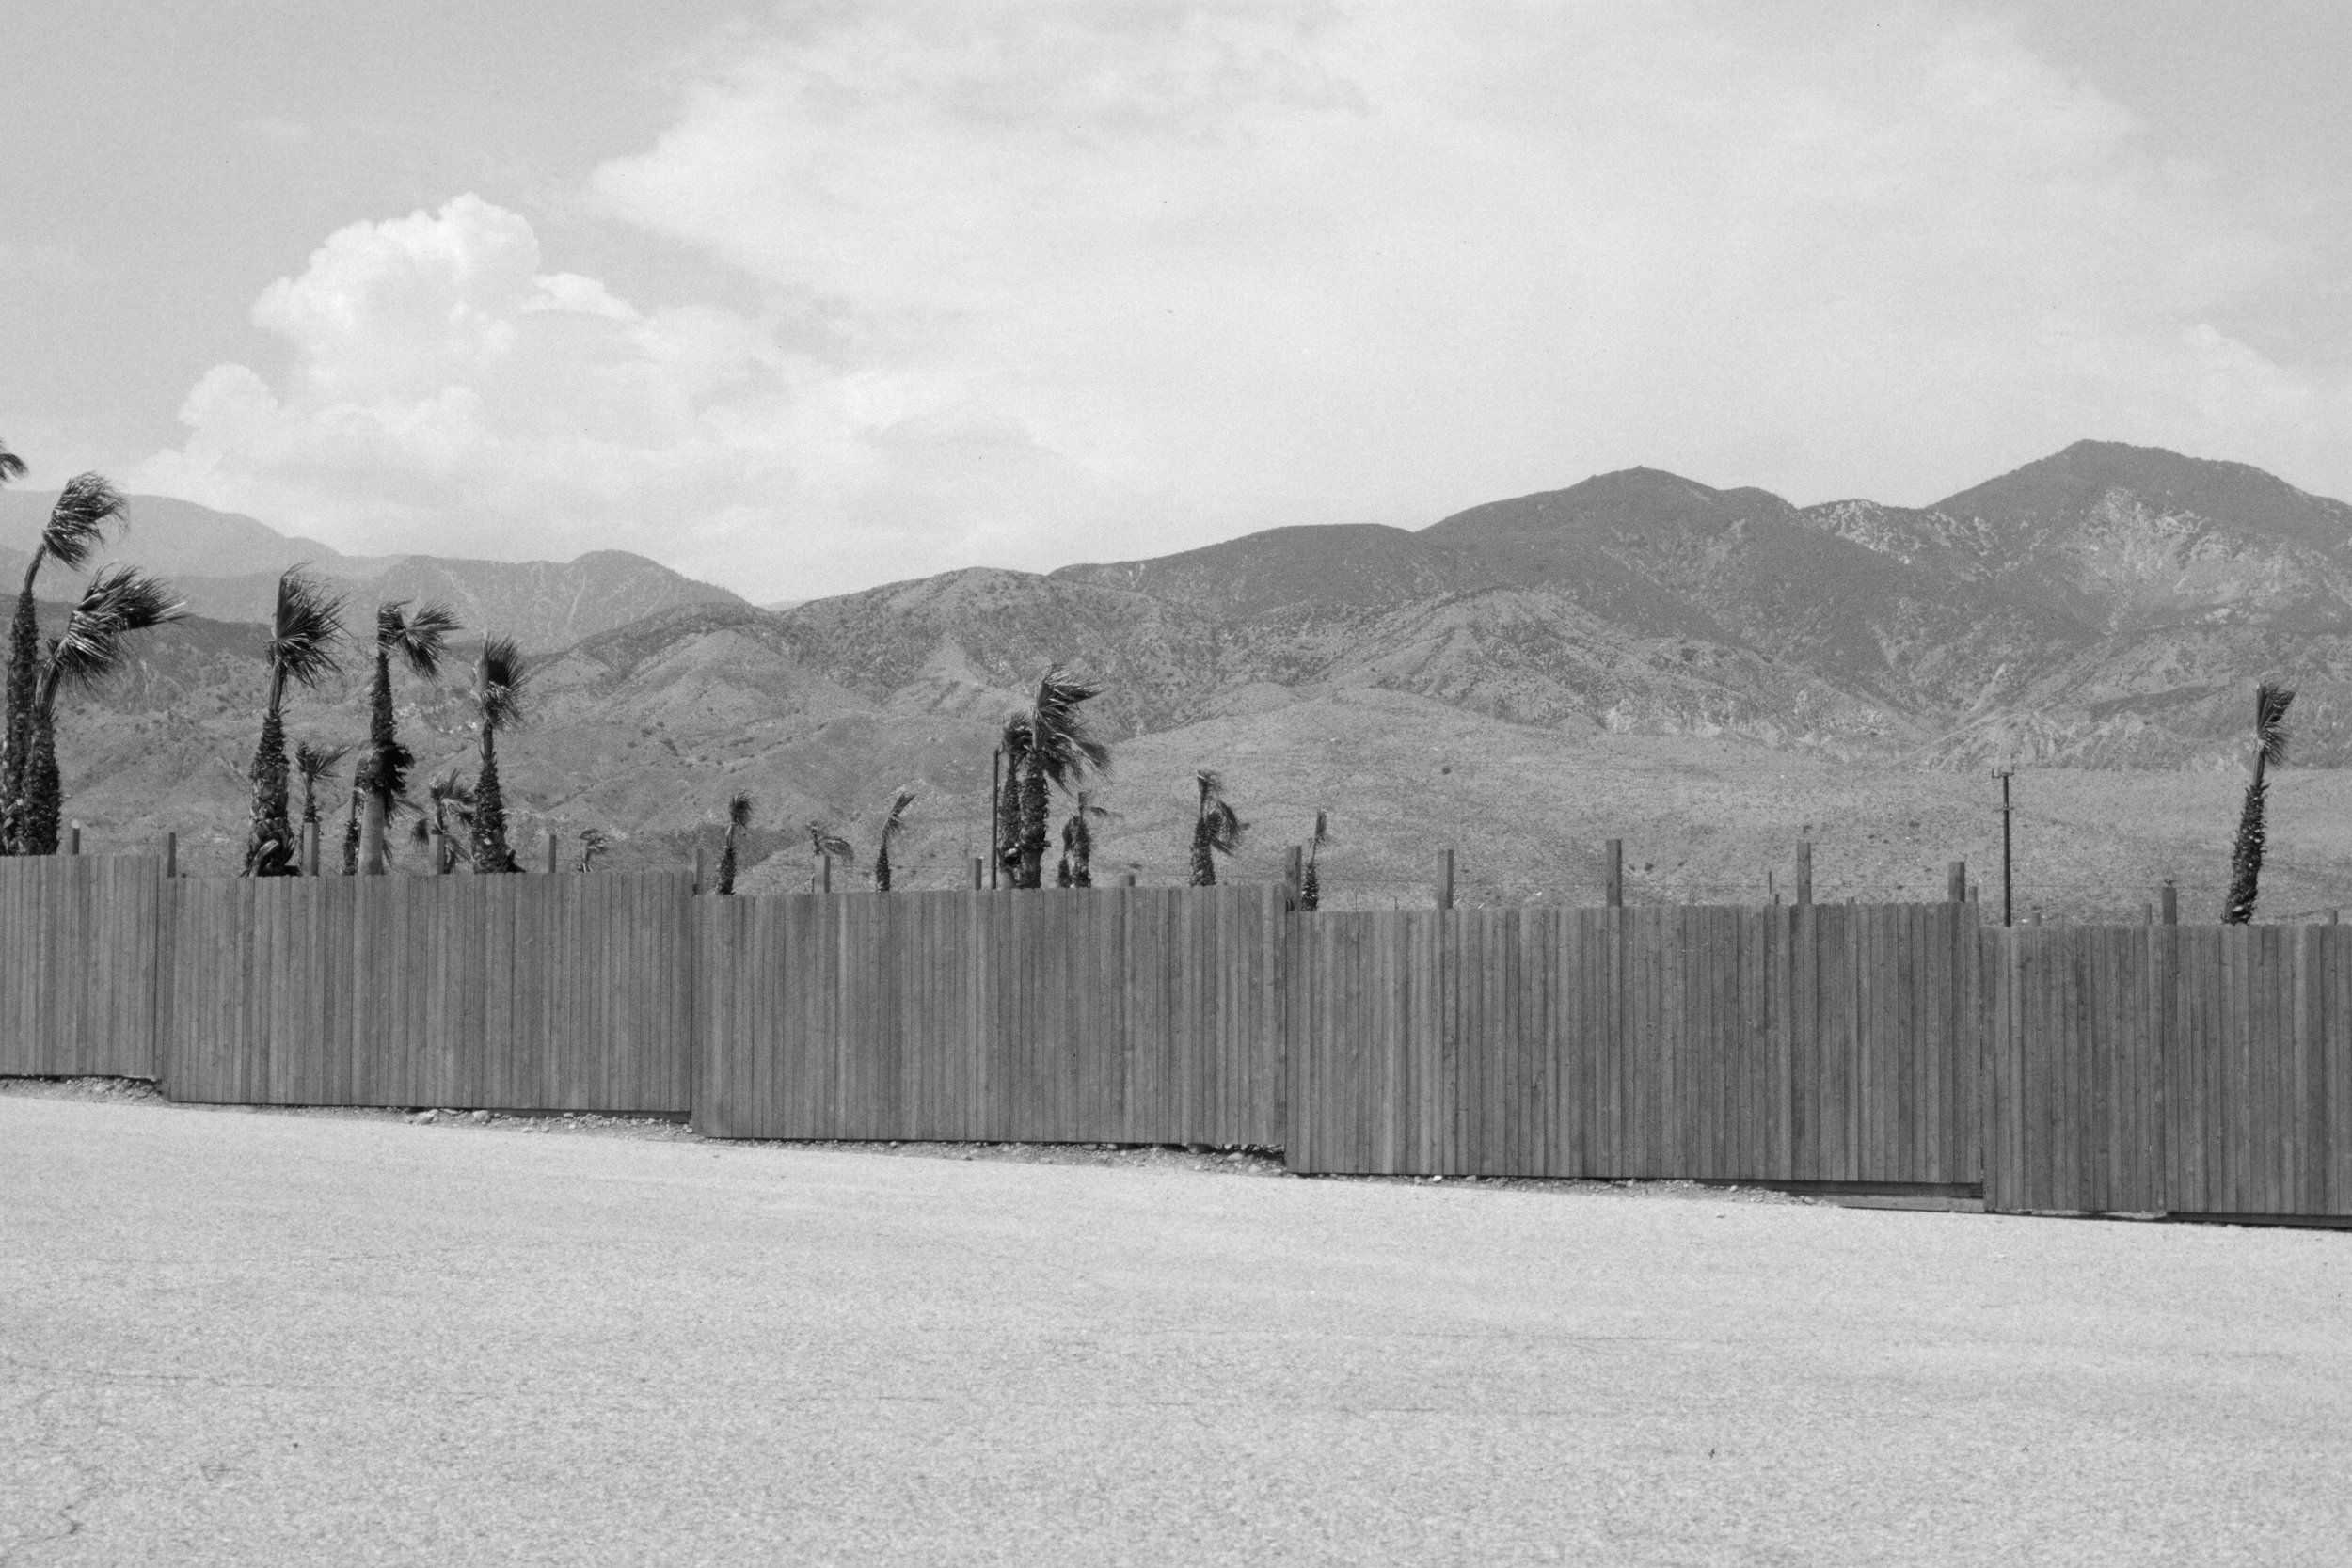 Fence in parking lot adjacent to the Cabazon Dinosaurs, 2008/9 - 35mm